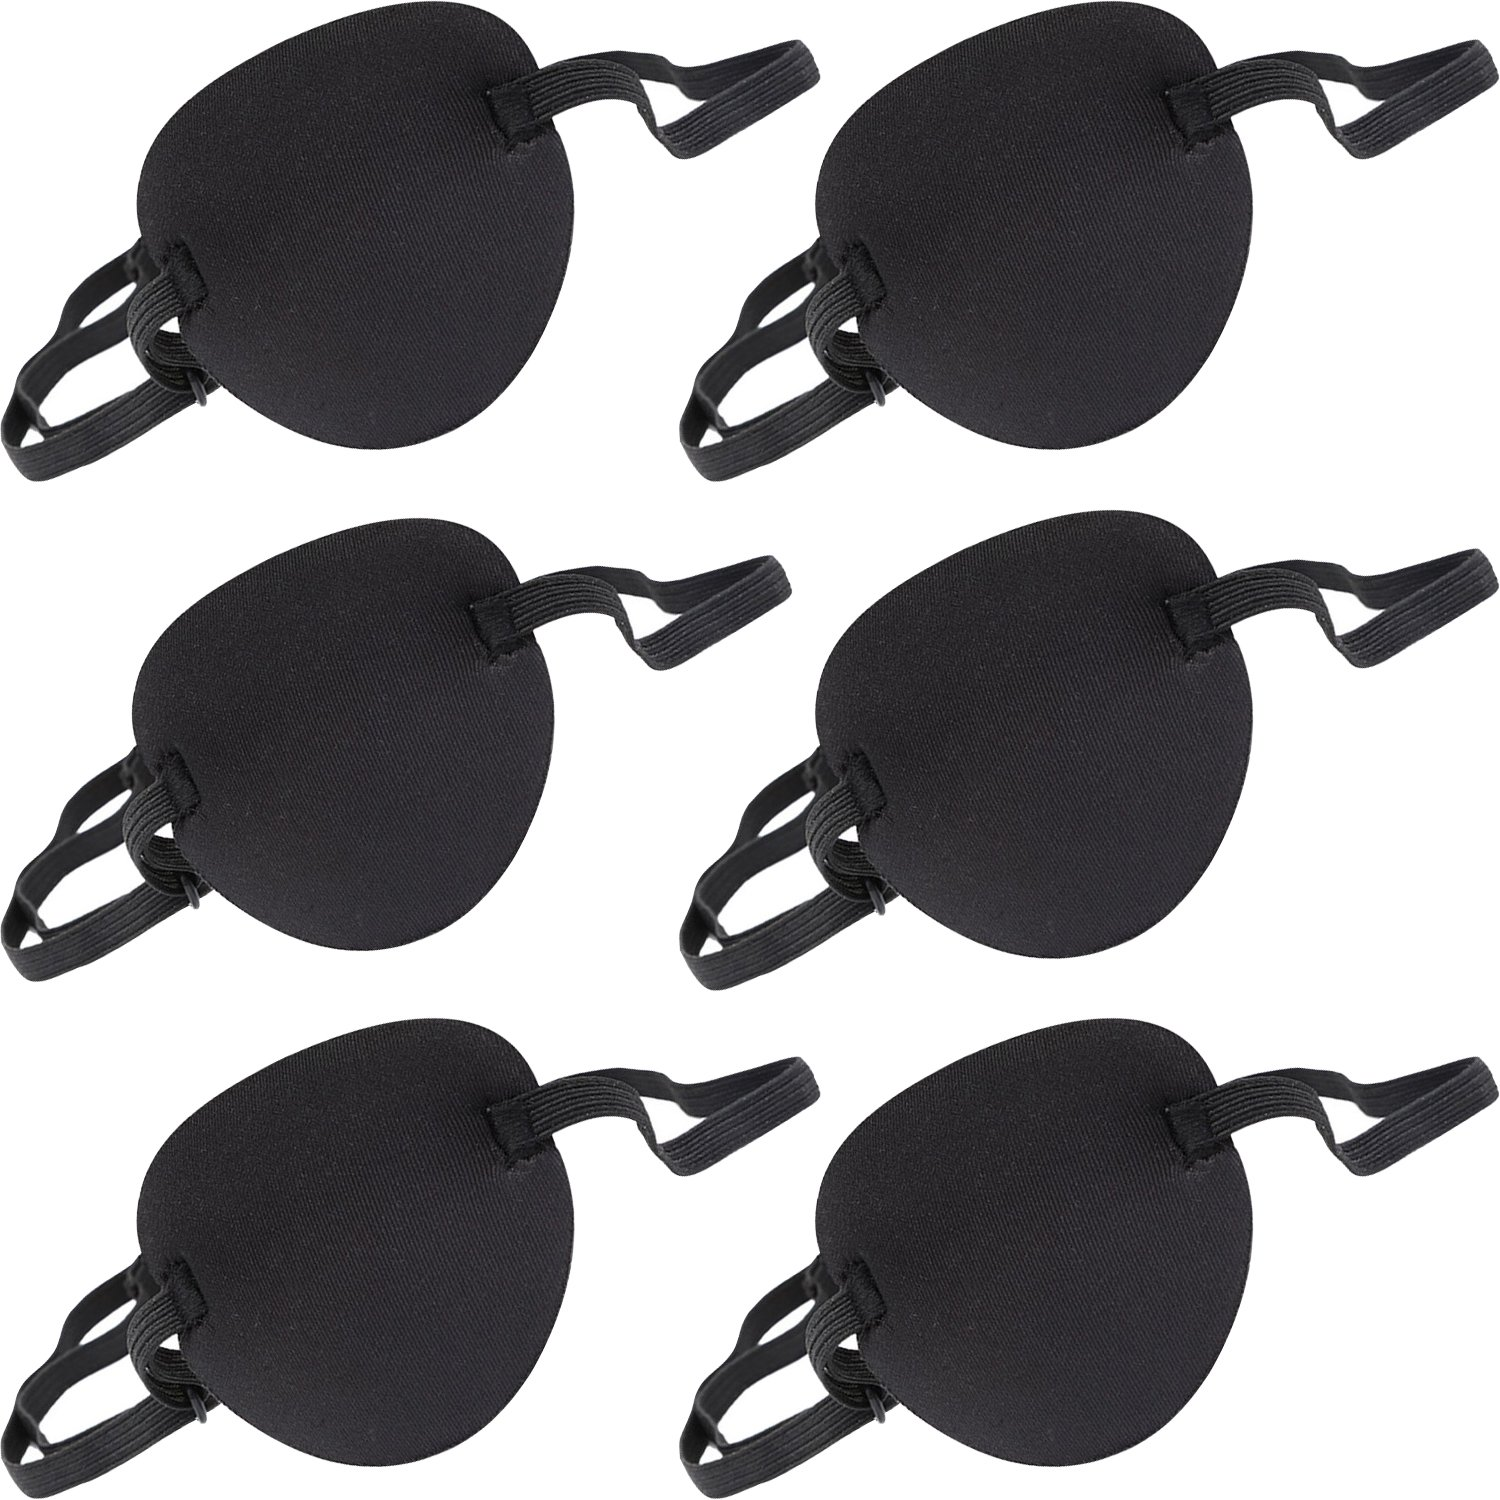 6 Pack Eye Patch Strabismus Adjustable Eye Patch Eye Mask with Buckle for Adults and Kids, Black Bememo